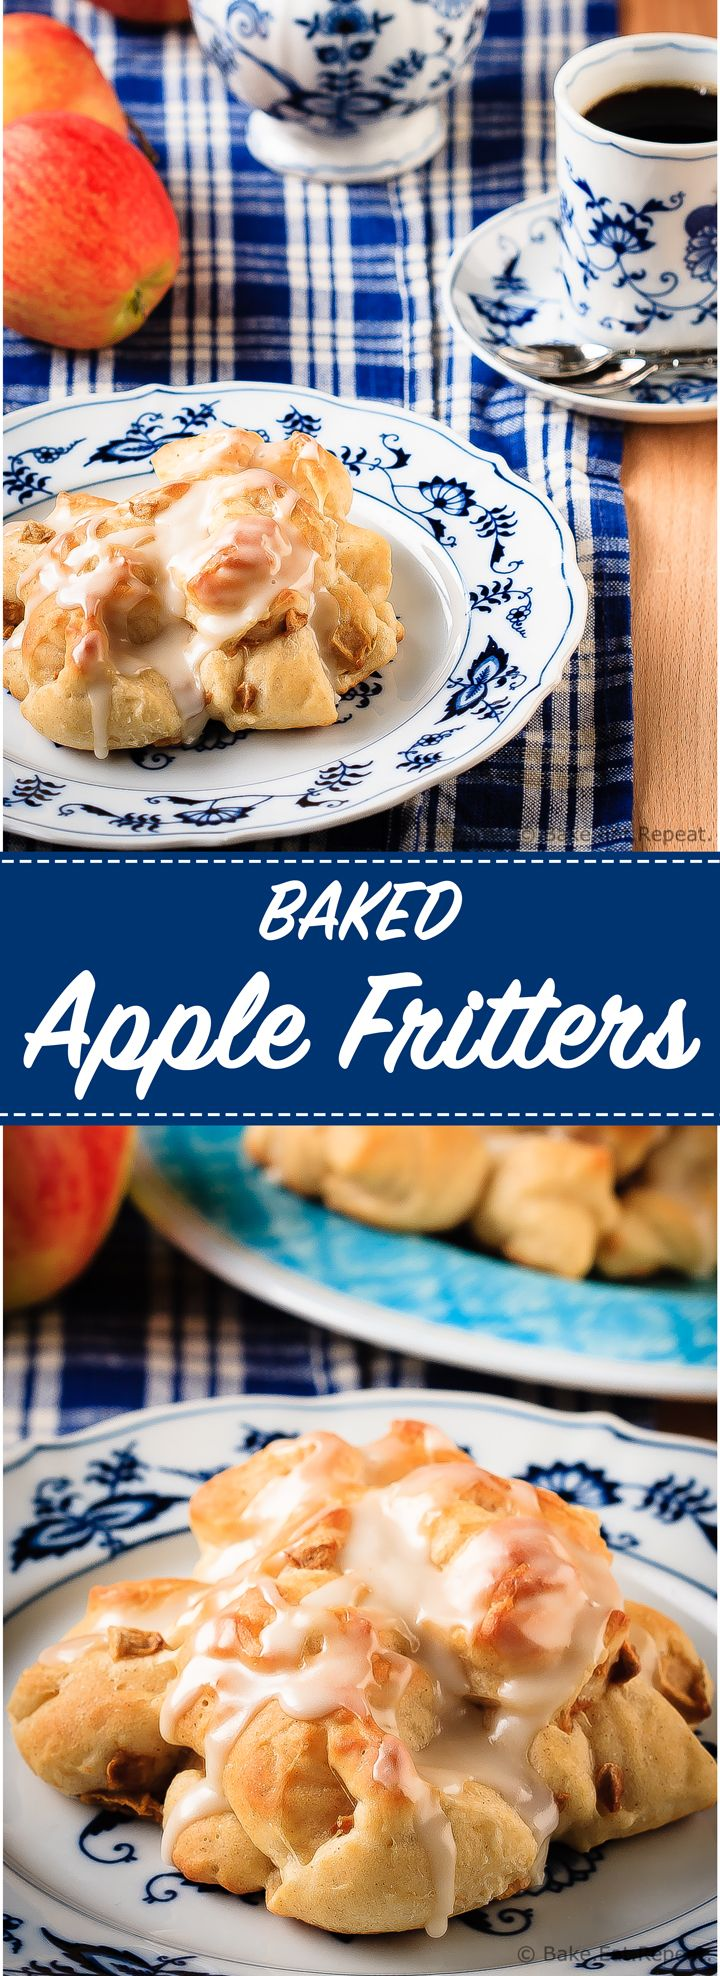 These baked apple fritters are easy to make and taste amazing - soft, tender, cinnamon spiced dough studded with apples and drizzled with a vanilla glaze.